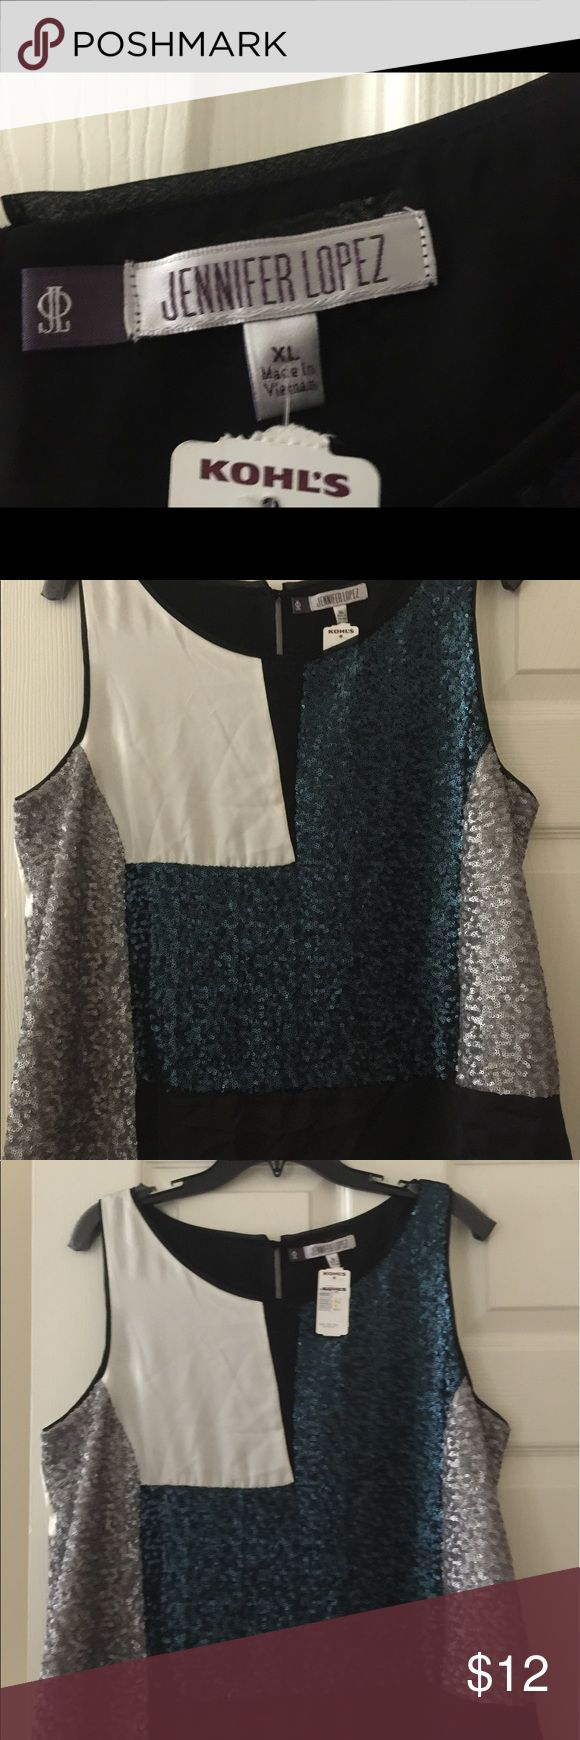 NWT Jennifer Lopez XL Sequined Dress Top NWT Jennifer Lopez XL Dress top.  Stunning short sleeve dressy JLO top.  Gorgeous top. Regret that I never had a place to wear this.  No weight loss equals your gain.  With this purchase I will include a thank you note and gift!  You will love this top! Jennifer Lopez Tops